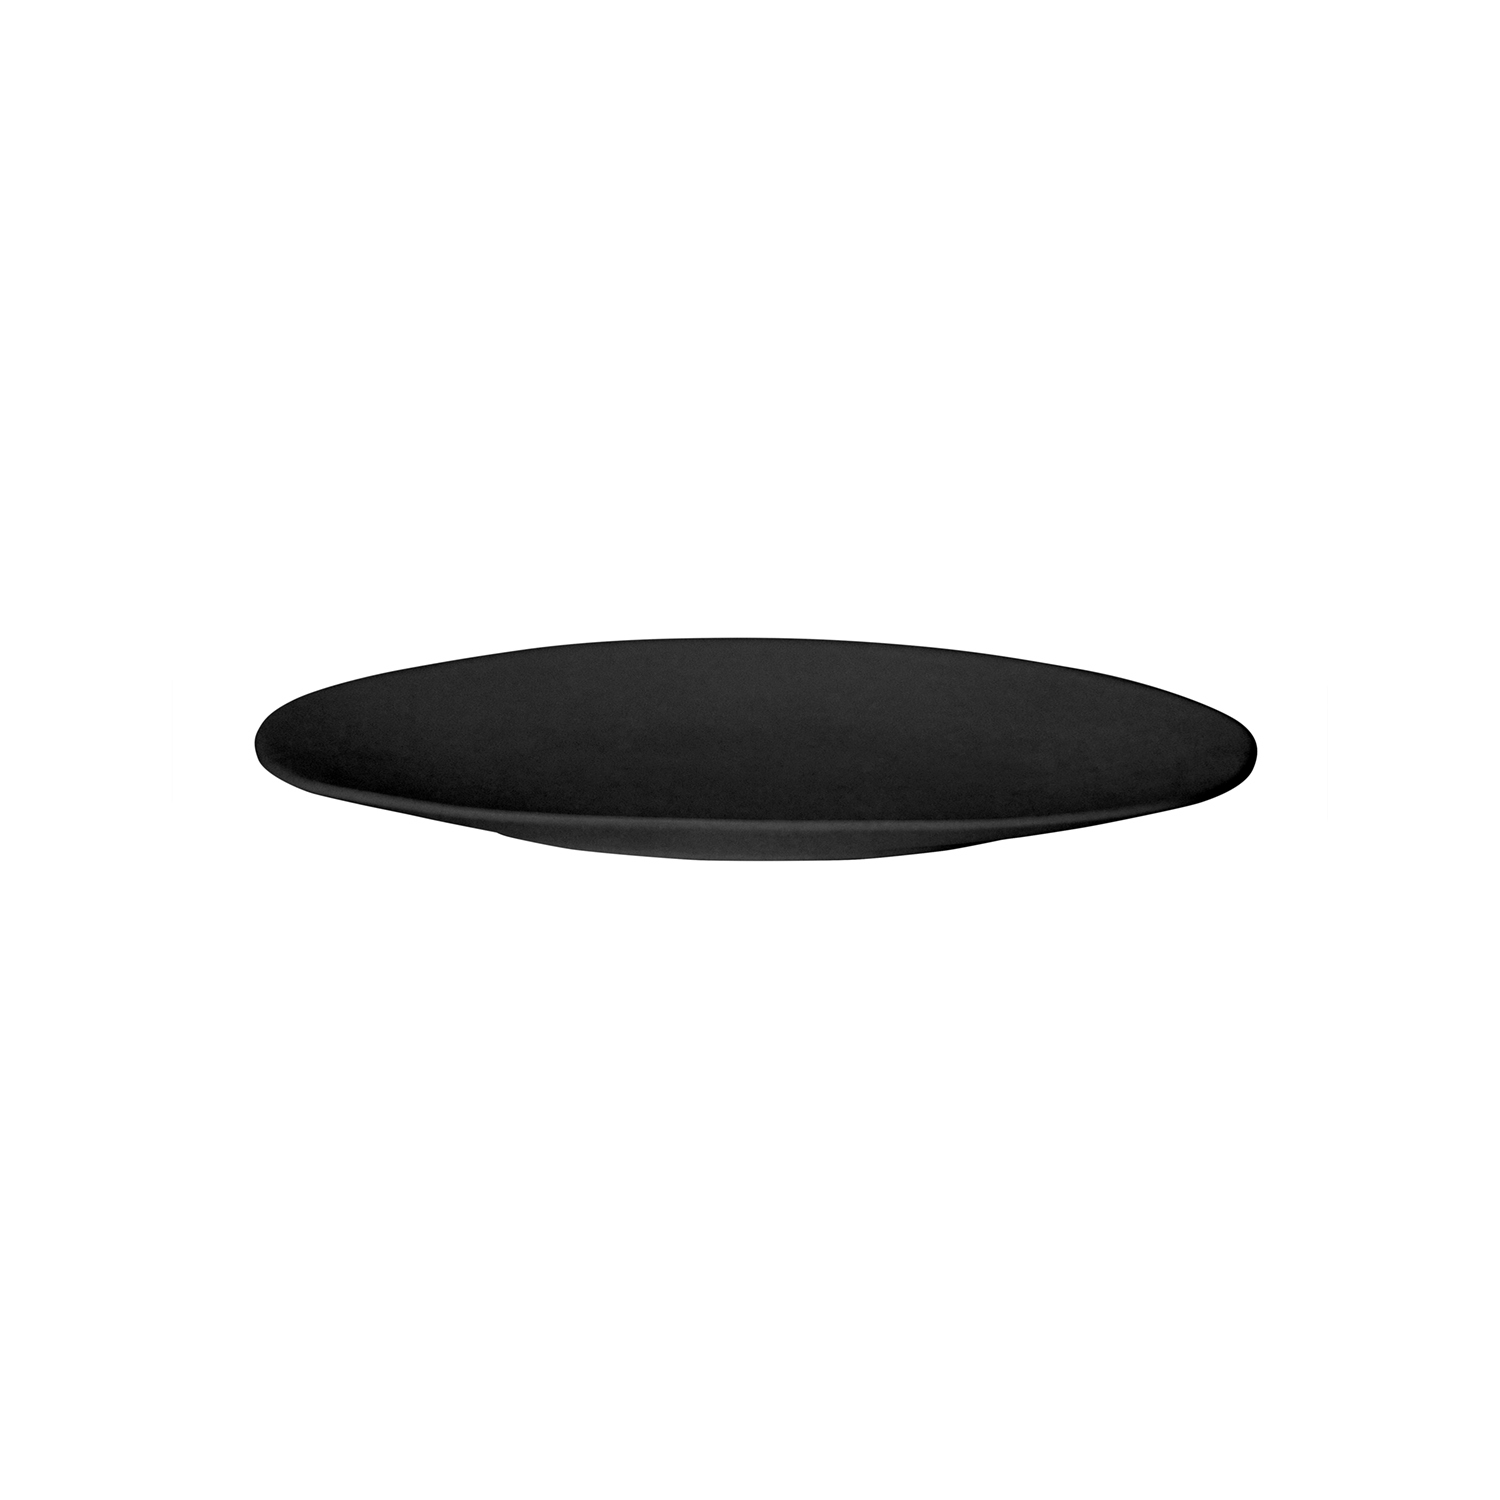 General Eclectic: Freya Small Platter - Black image